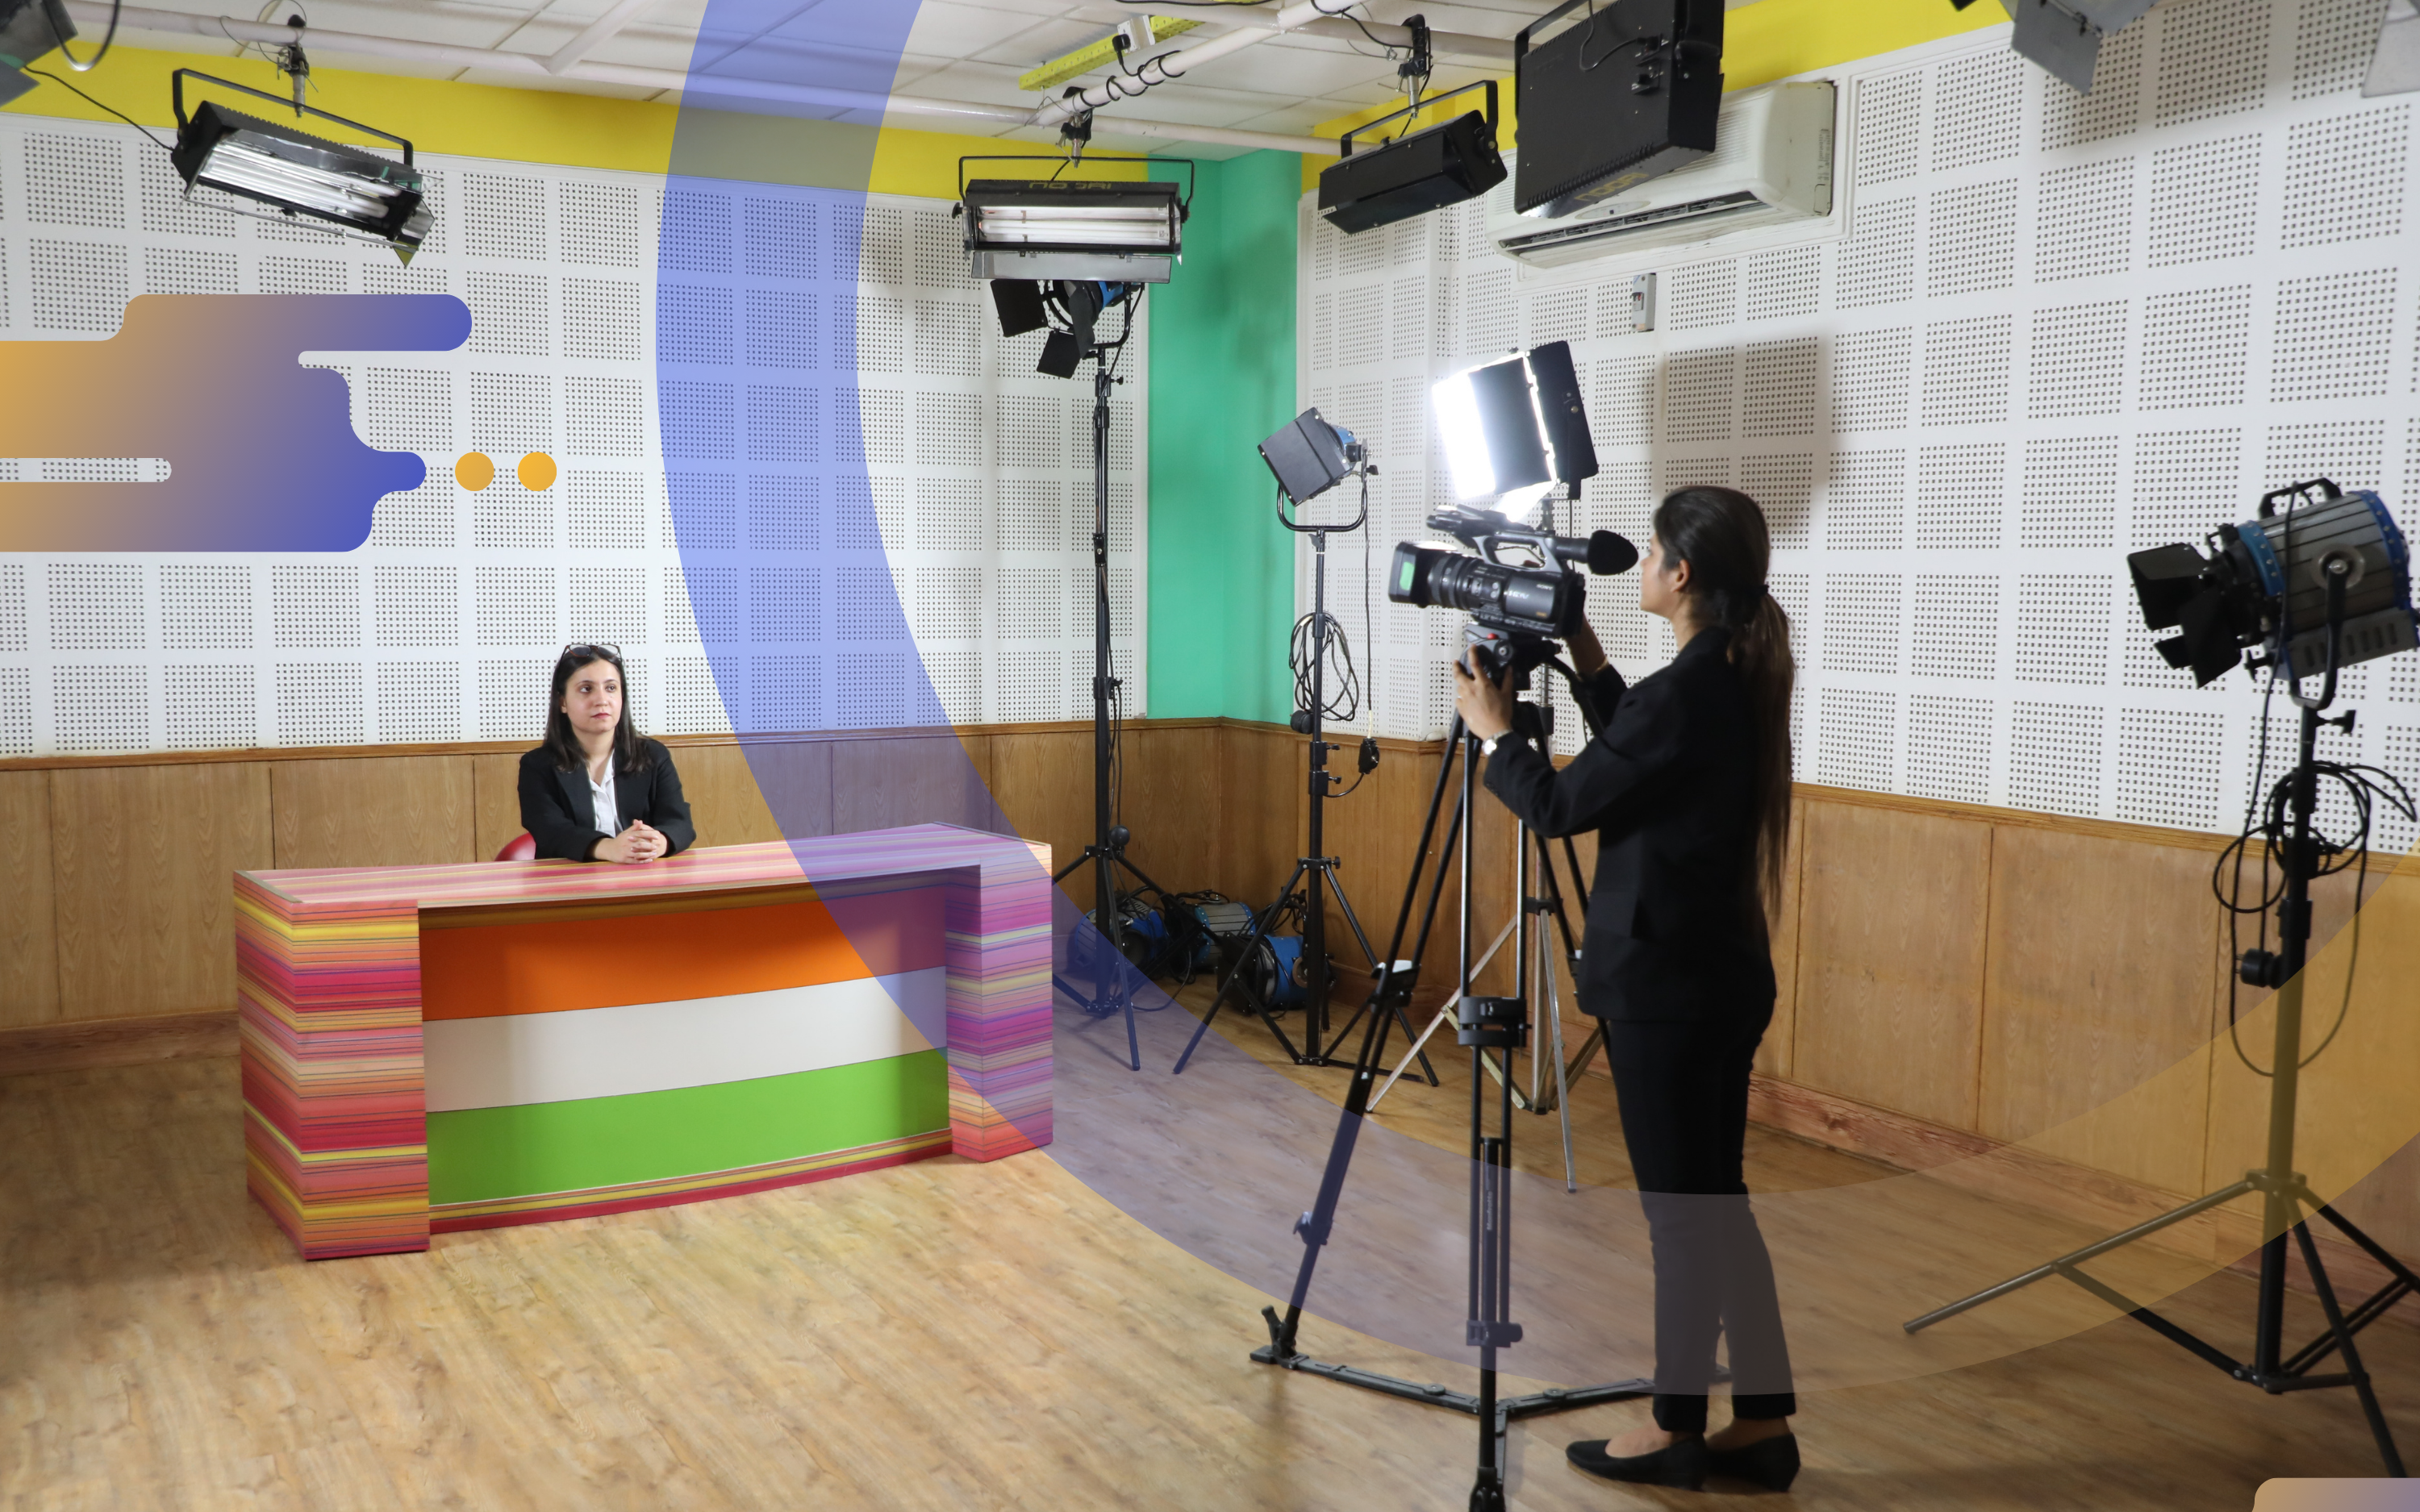 Affiliated to IPU, FIMT College is also known for its journalism courses.